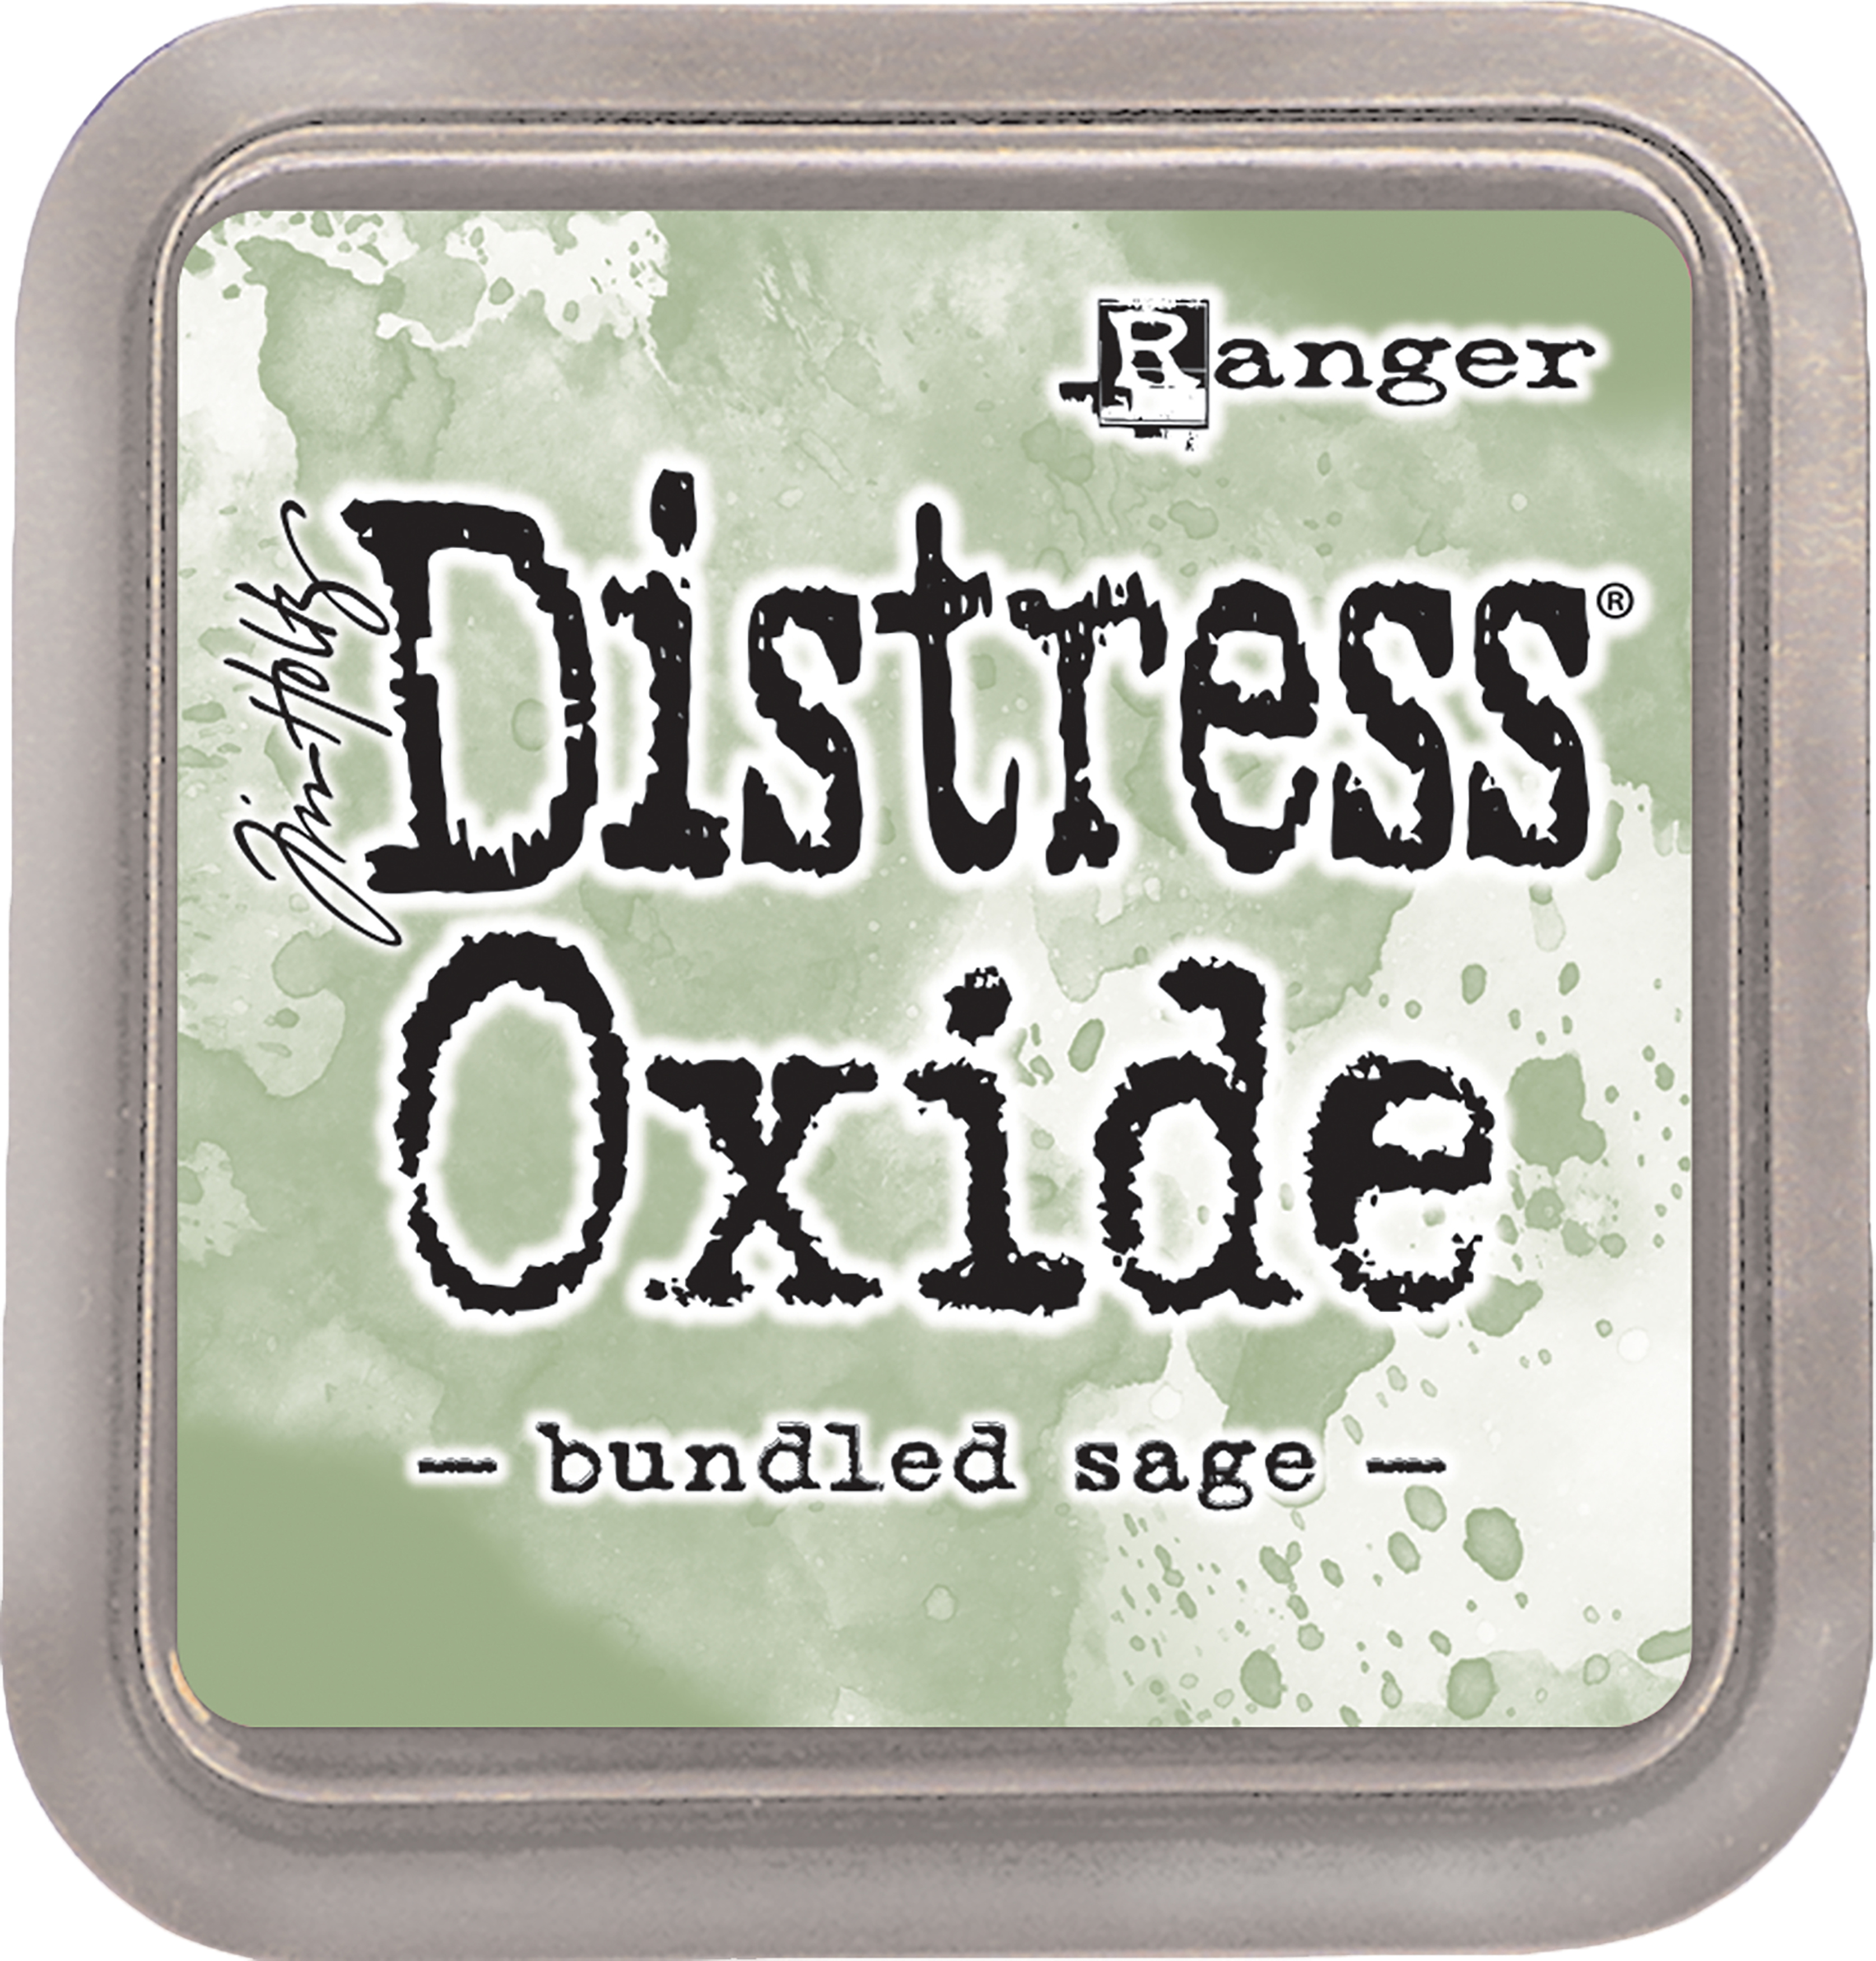 Tim Holtz Distress Oxides Ink Pad-Bundled Sage